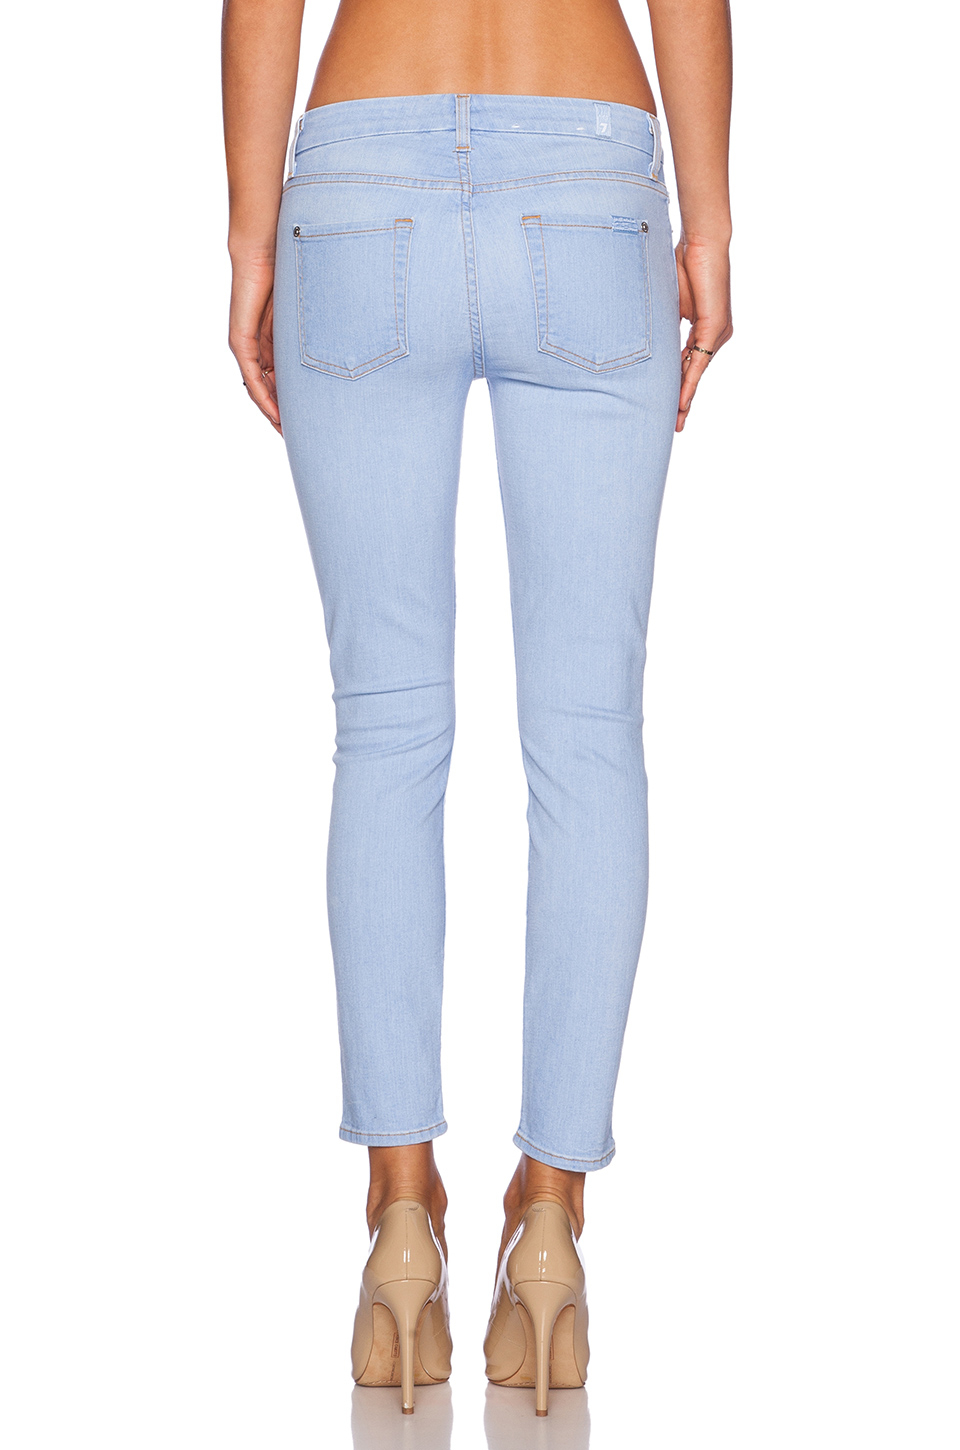 lyst 7 for all mankind skinny cropped mid rise stretch denim jeans in blue. Black Bedroom Furniture Sets. Home Design Ideas